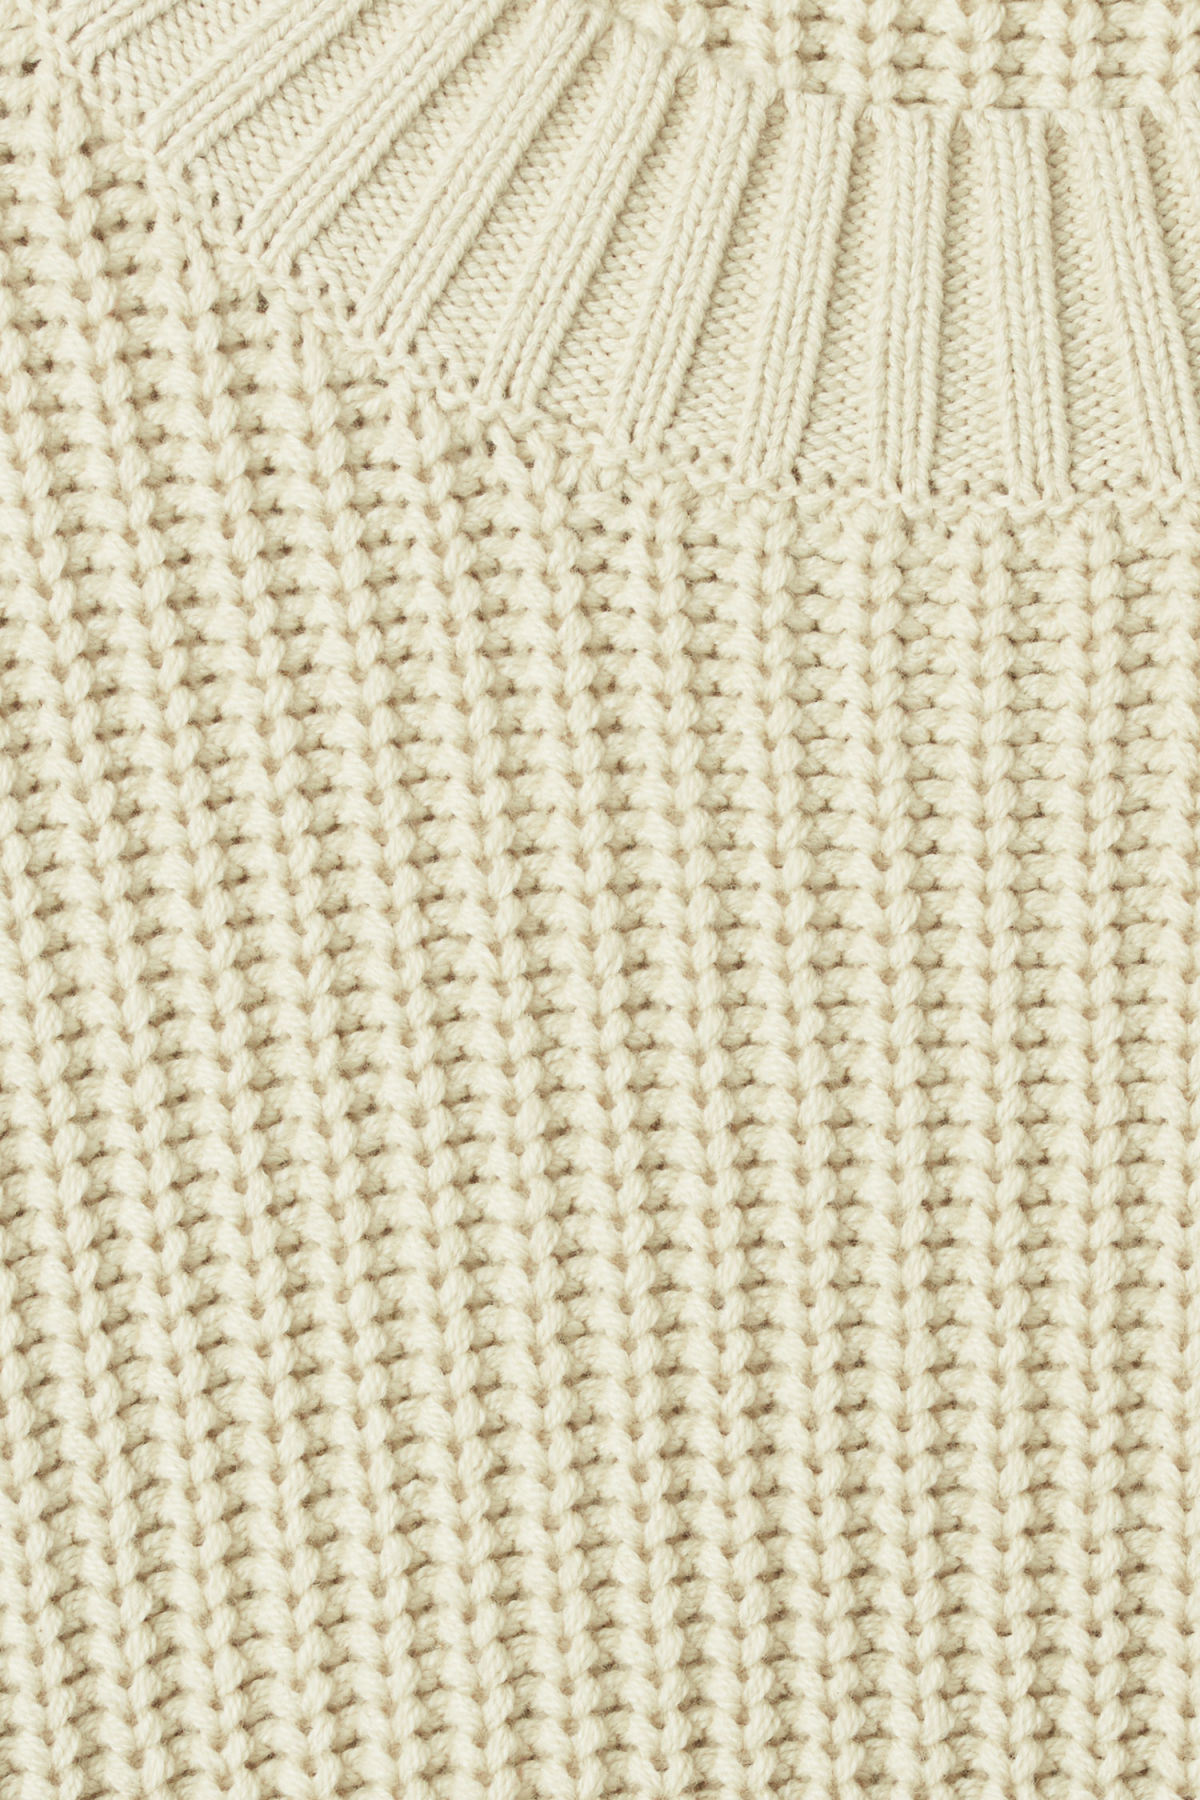 Detailed image of Weekday mahal sweater in beige